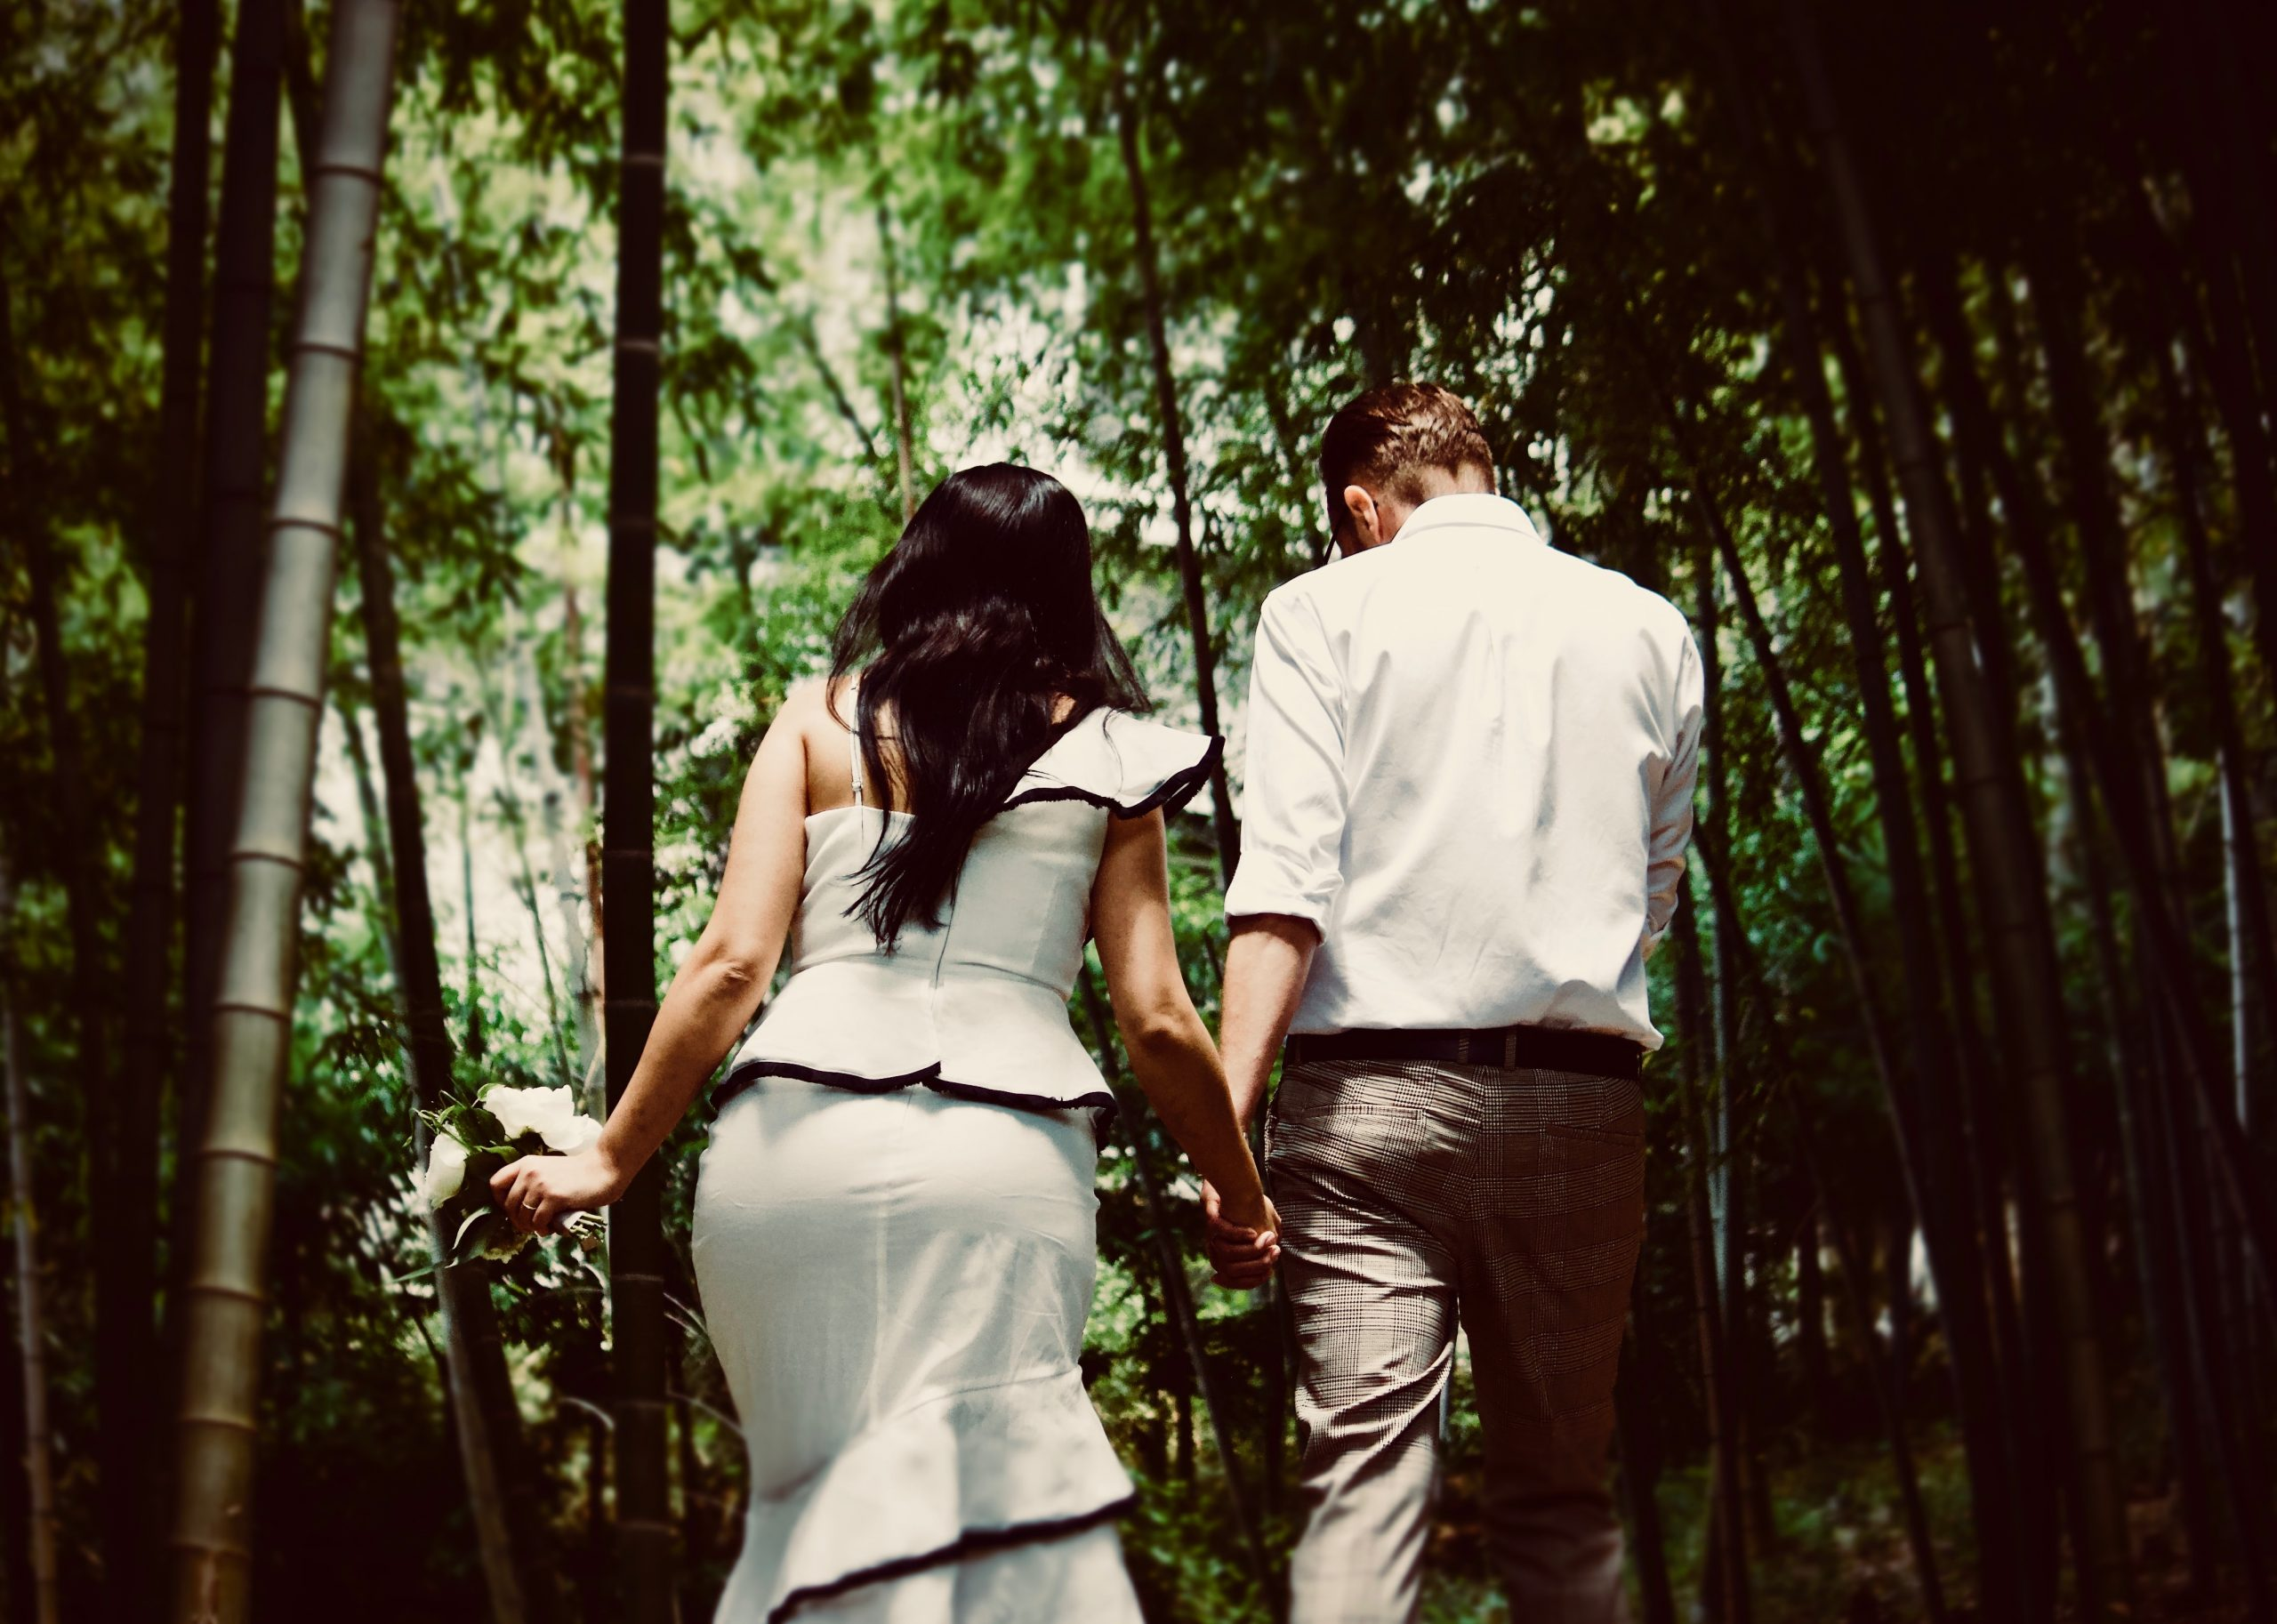 The pros and cons of outdoor weddings